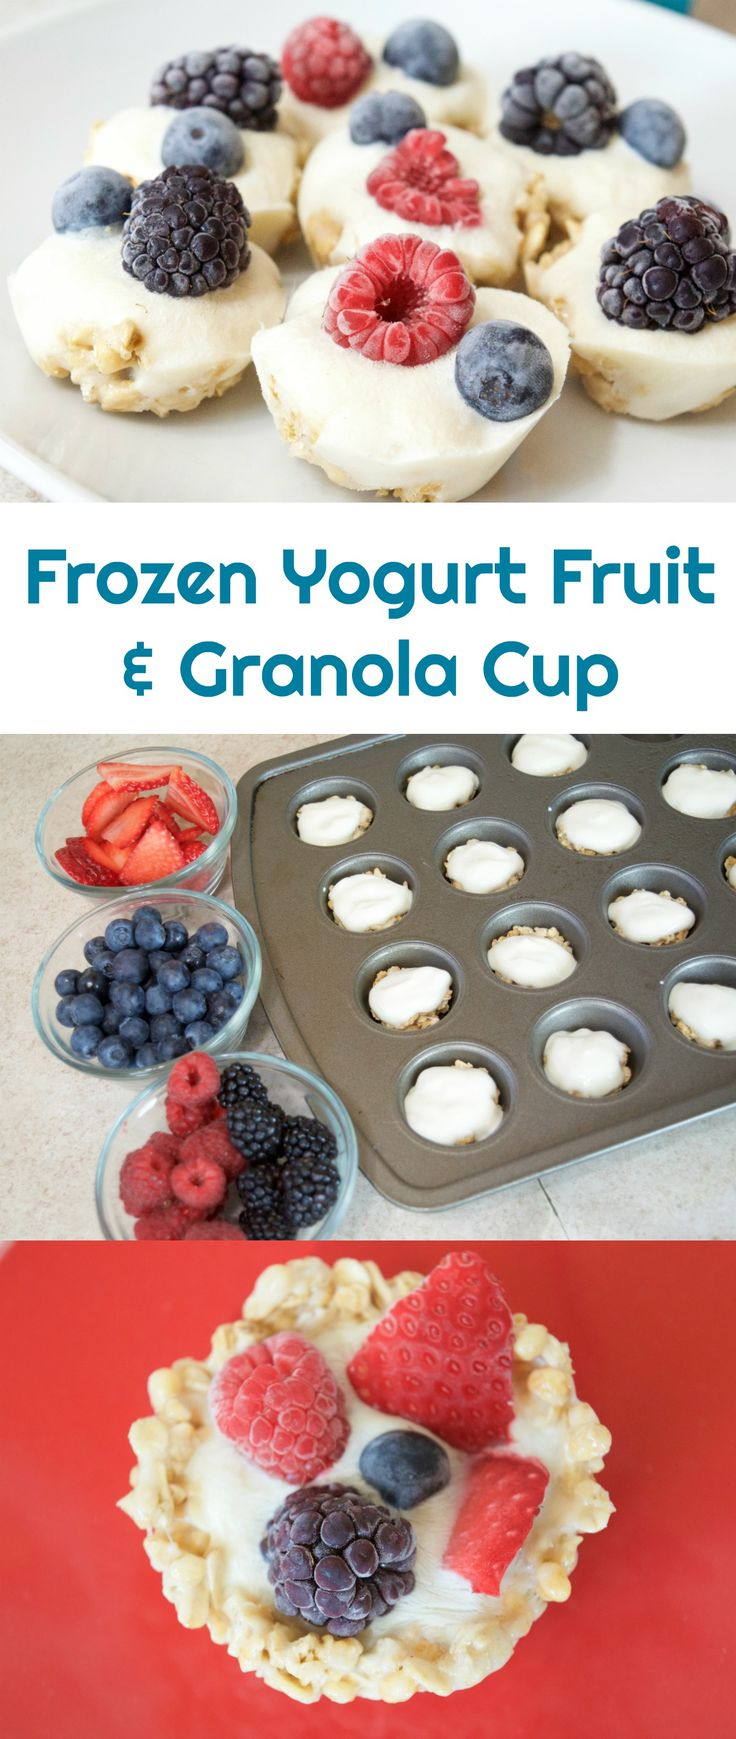 Healthy After School Snack idea! This Frozen Yogurt Fruit & Granola Cup only takes a few minutes to prep then freeze! Store it until you're ready to eat. These are DELICIOUS and a great healthy recipe for any diet! You can adjust the recipes as needed for keto friendly, gluten free, nut free or diabetic diet. She has bite sized yogurt fruit cups and regular sized options! #recipe #recipeideas #healthyrecipes #healthysnacks ad